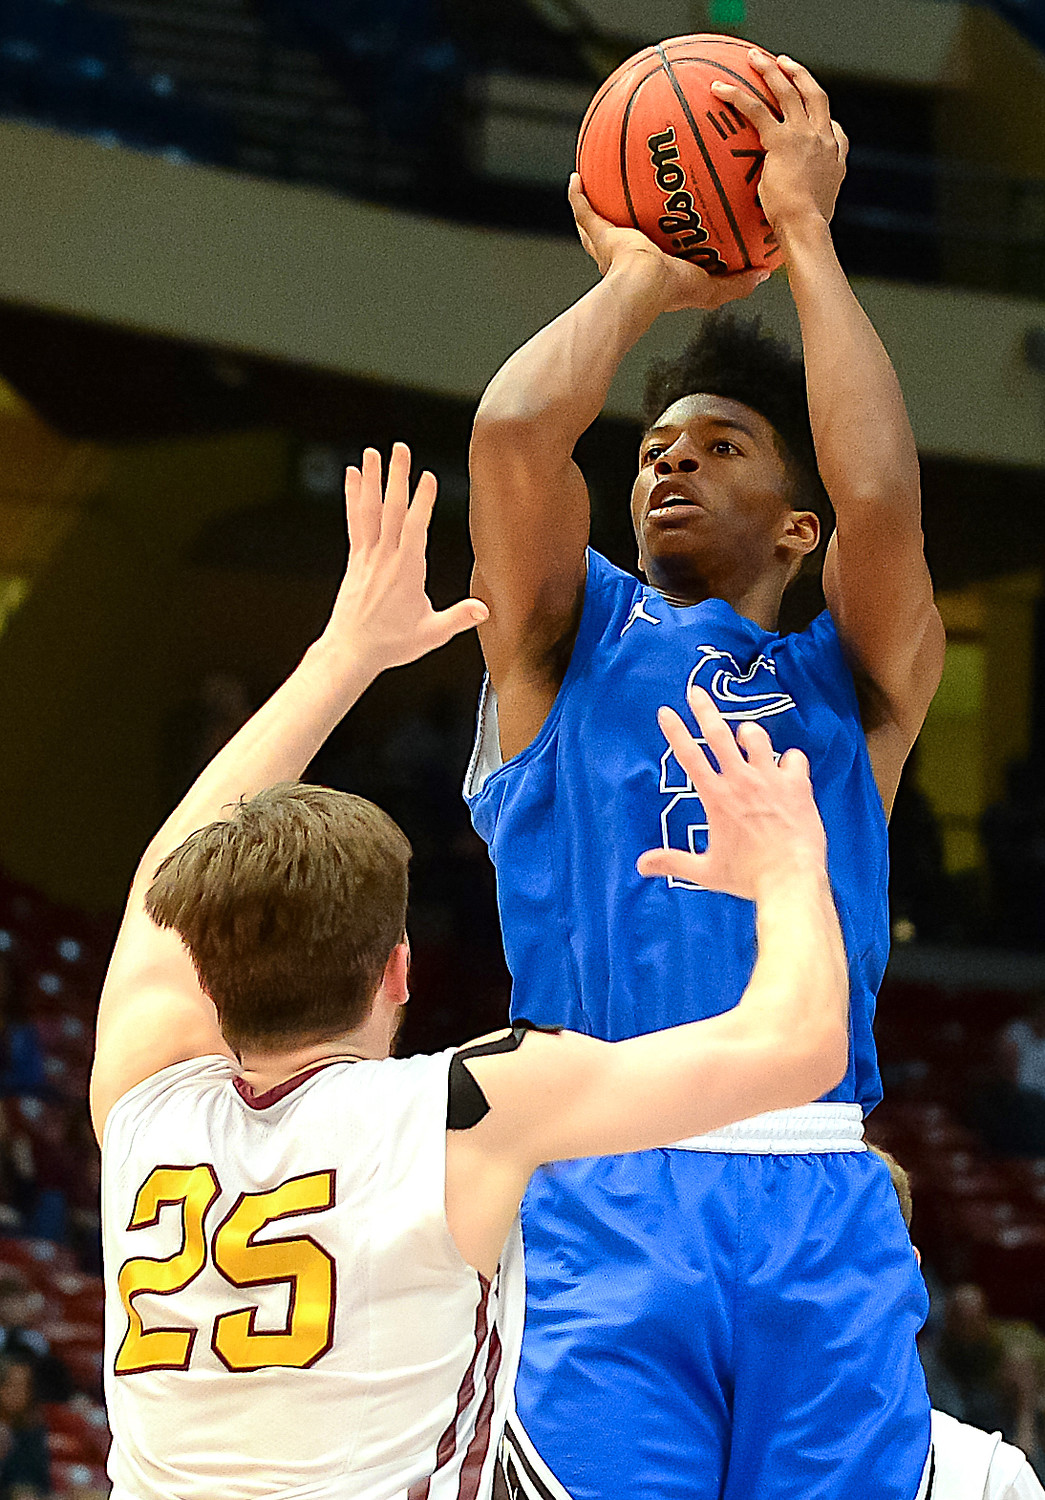 Cordova's Isaac Chatman shoots over a Madison Academy defender during the Class 4A championship game in Birmingham in March. The Blue Devils won the county's first AHSAA basketball title.